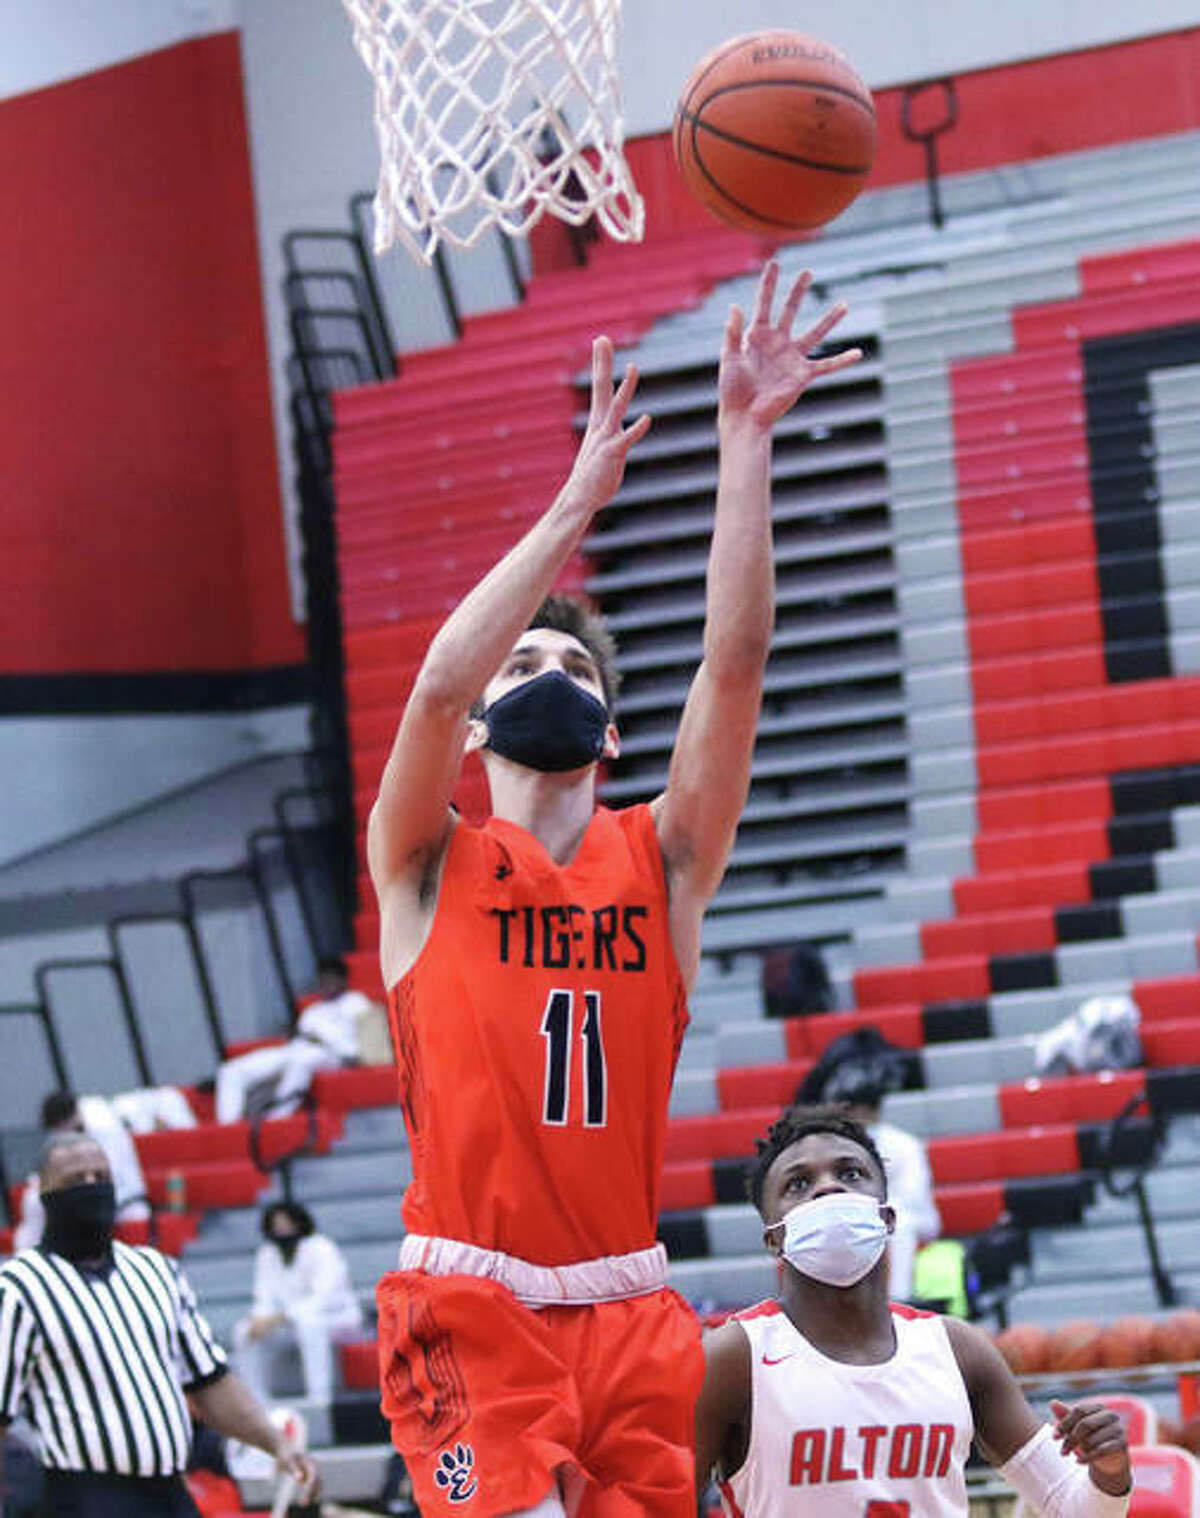 Edwardsville's Brennan Weller (11) scores two of his 30 points while Alton's Keith Smith watches the play Saturday at Alton High in Godfrey. Weller scored 30 points in the Tigers' win to become Edwardsville's 24th player to score more than 1,000 points in his career.